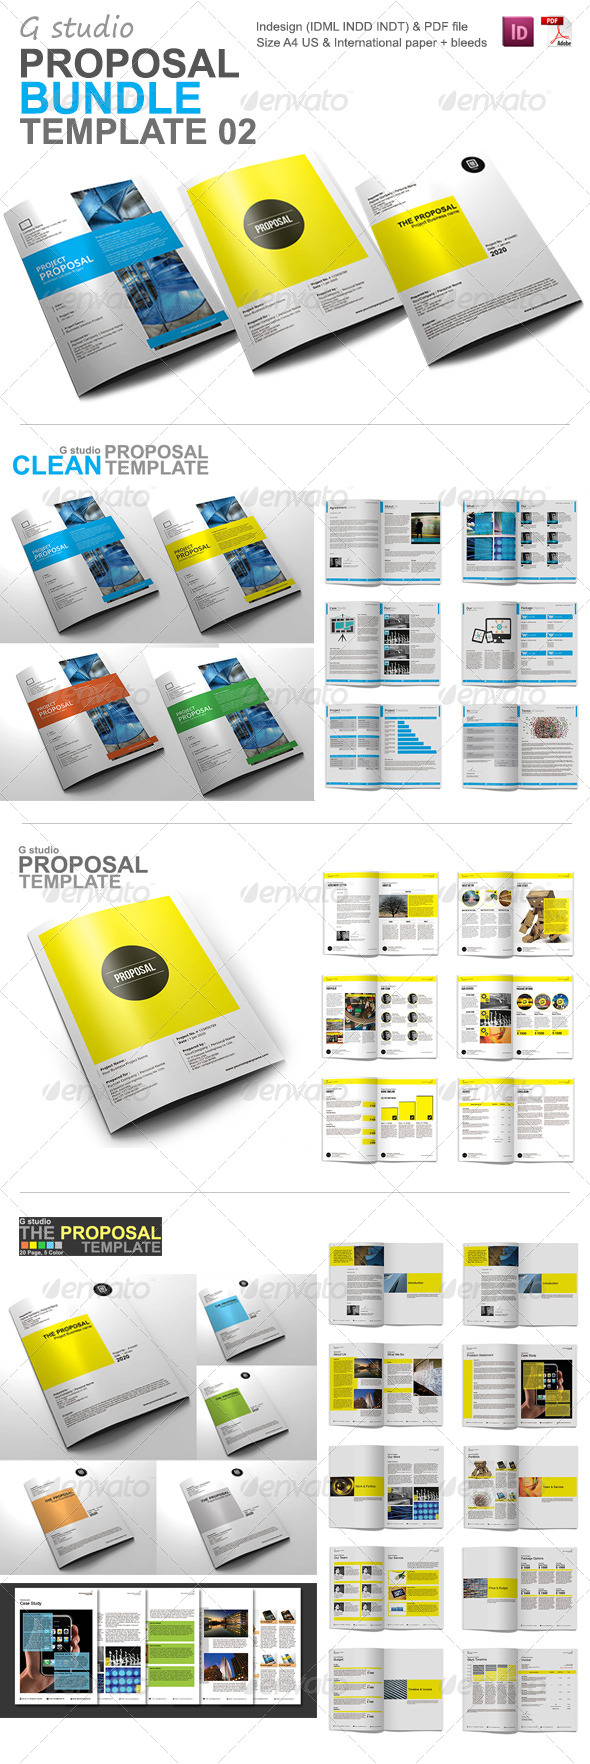 GraphicRiver Gstudio Proposal Bundle 02 5739950